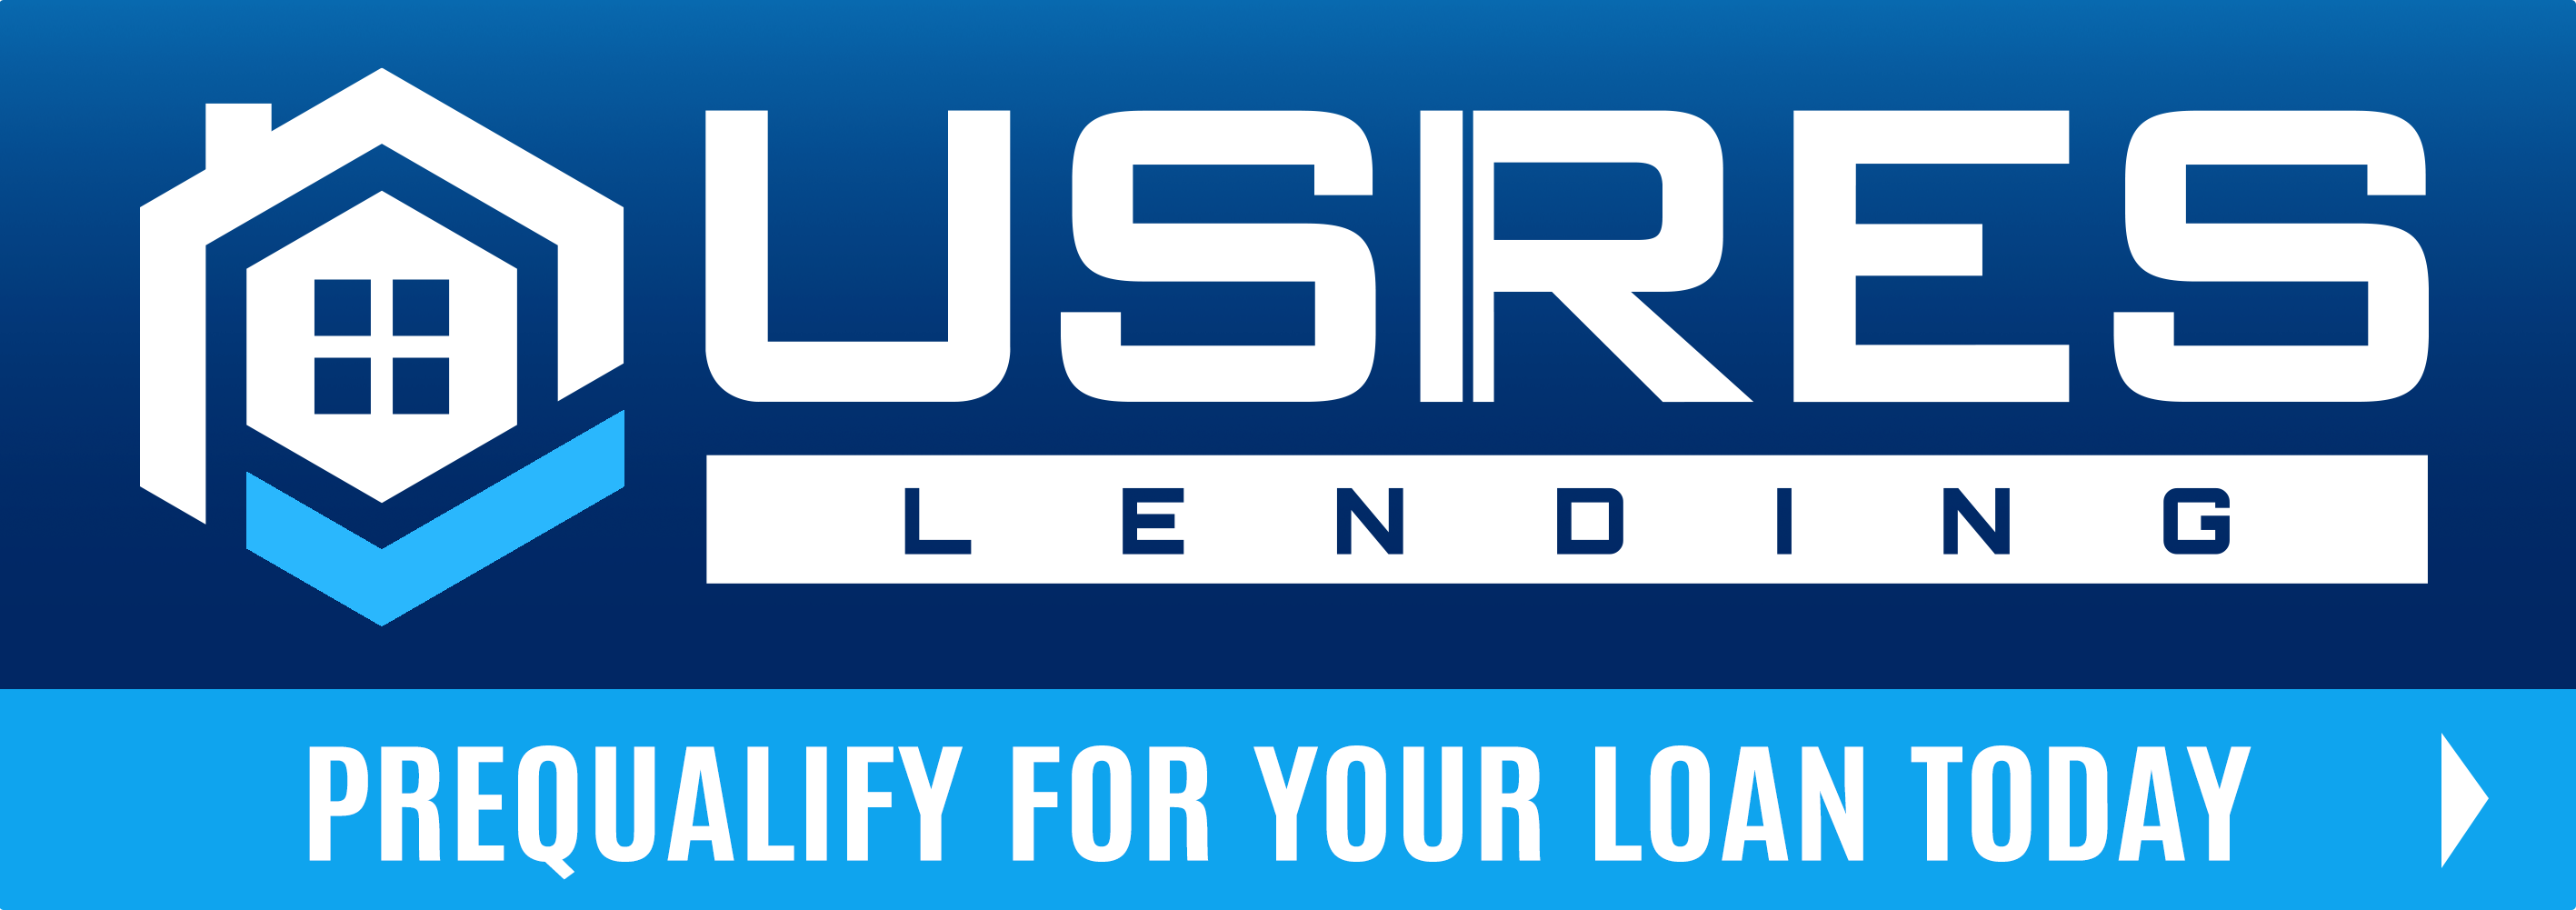 Get prequalified for your loan today with USRES Lending